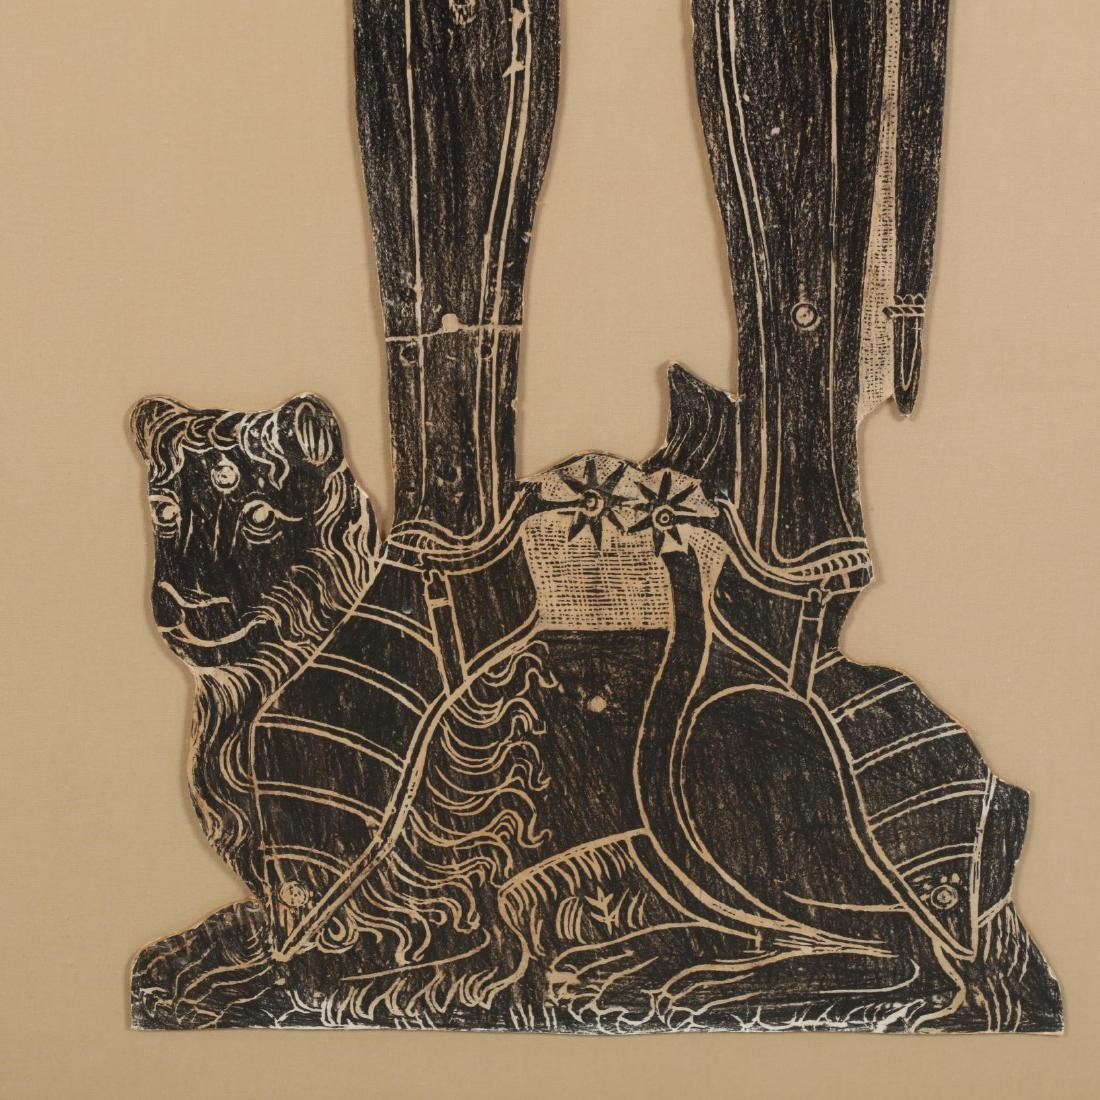 Monumental Brass Rubbing of an Armored Knight - 2